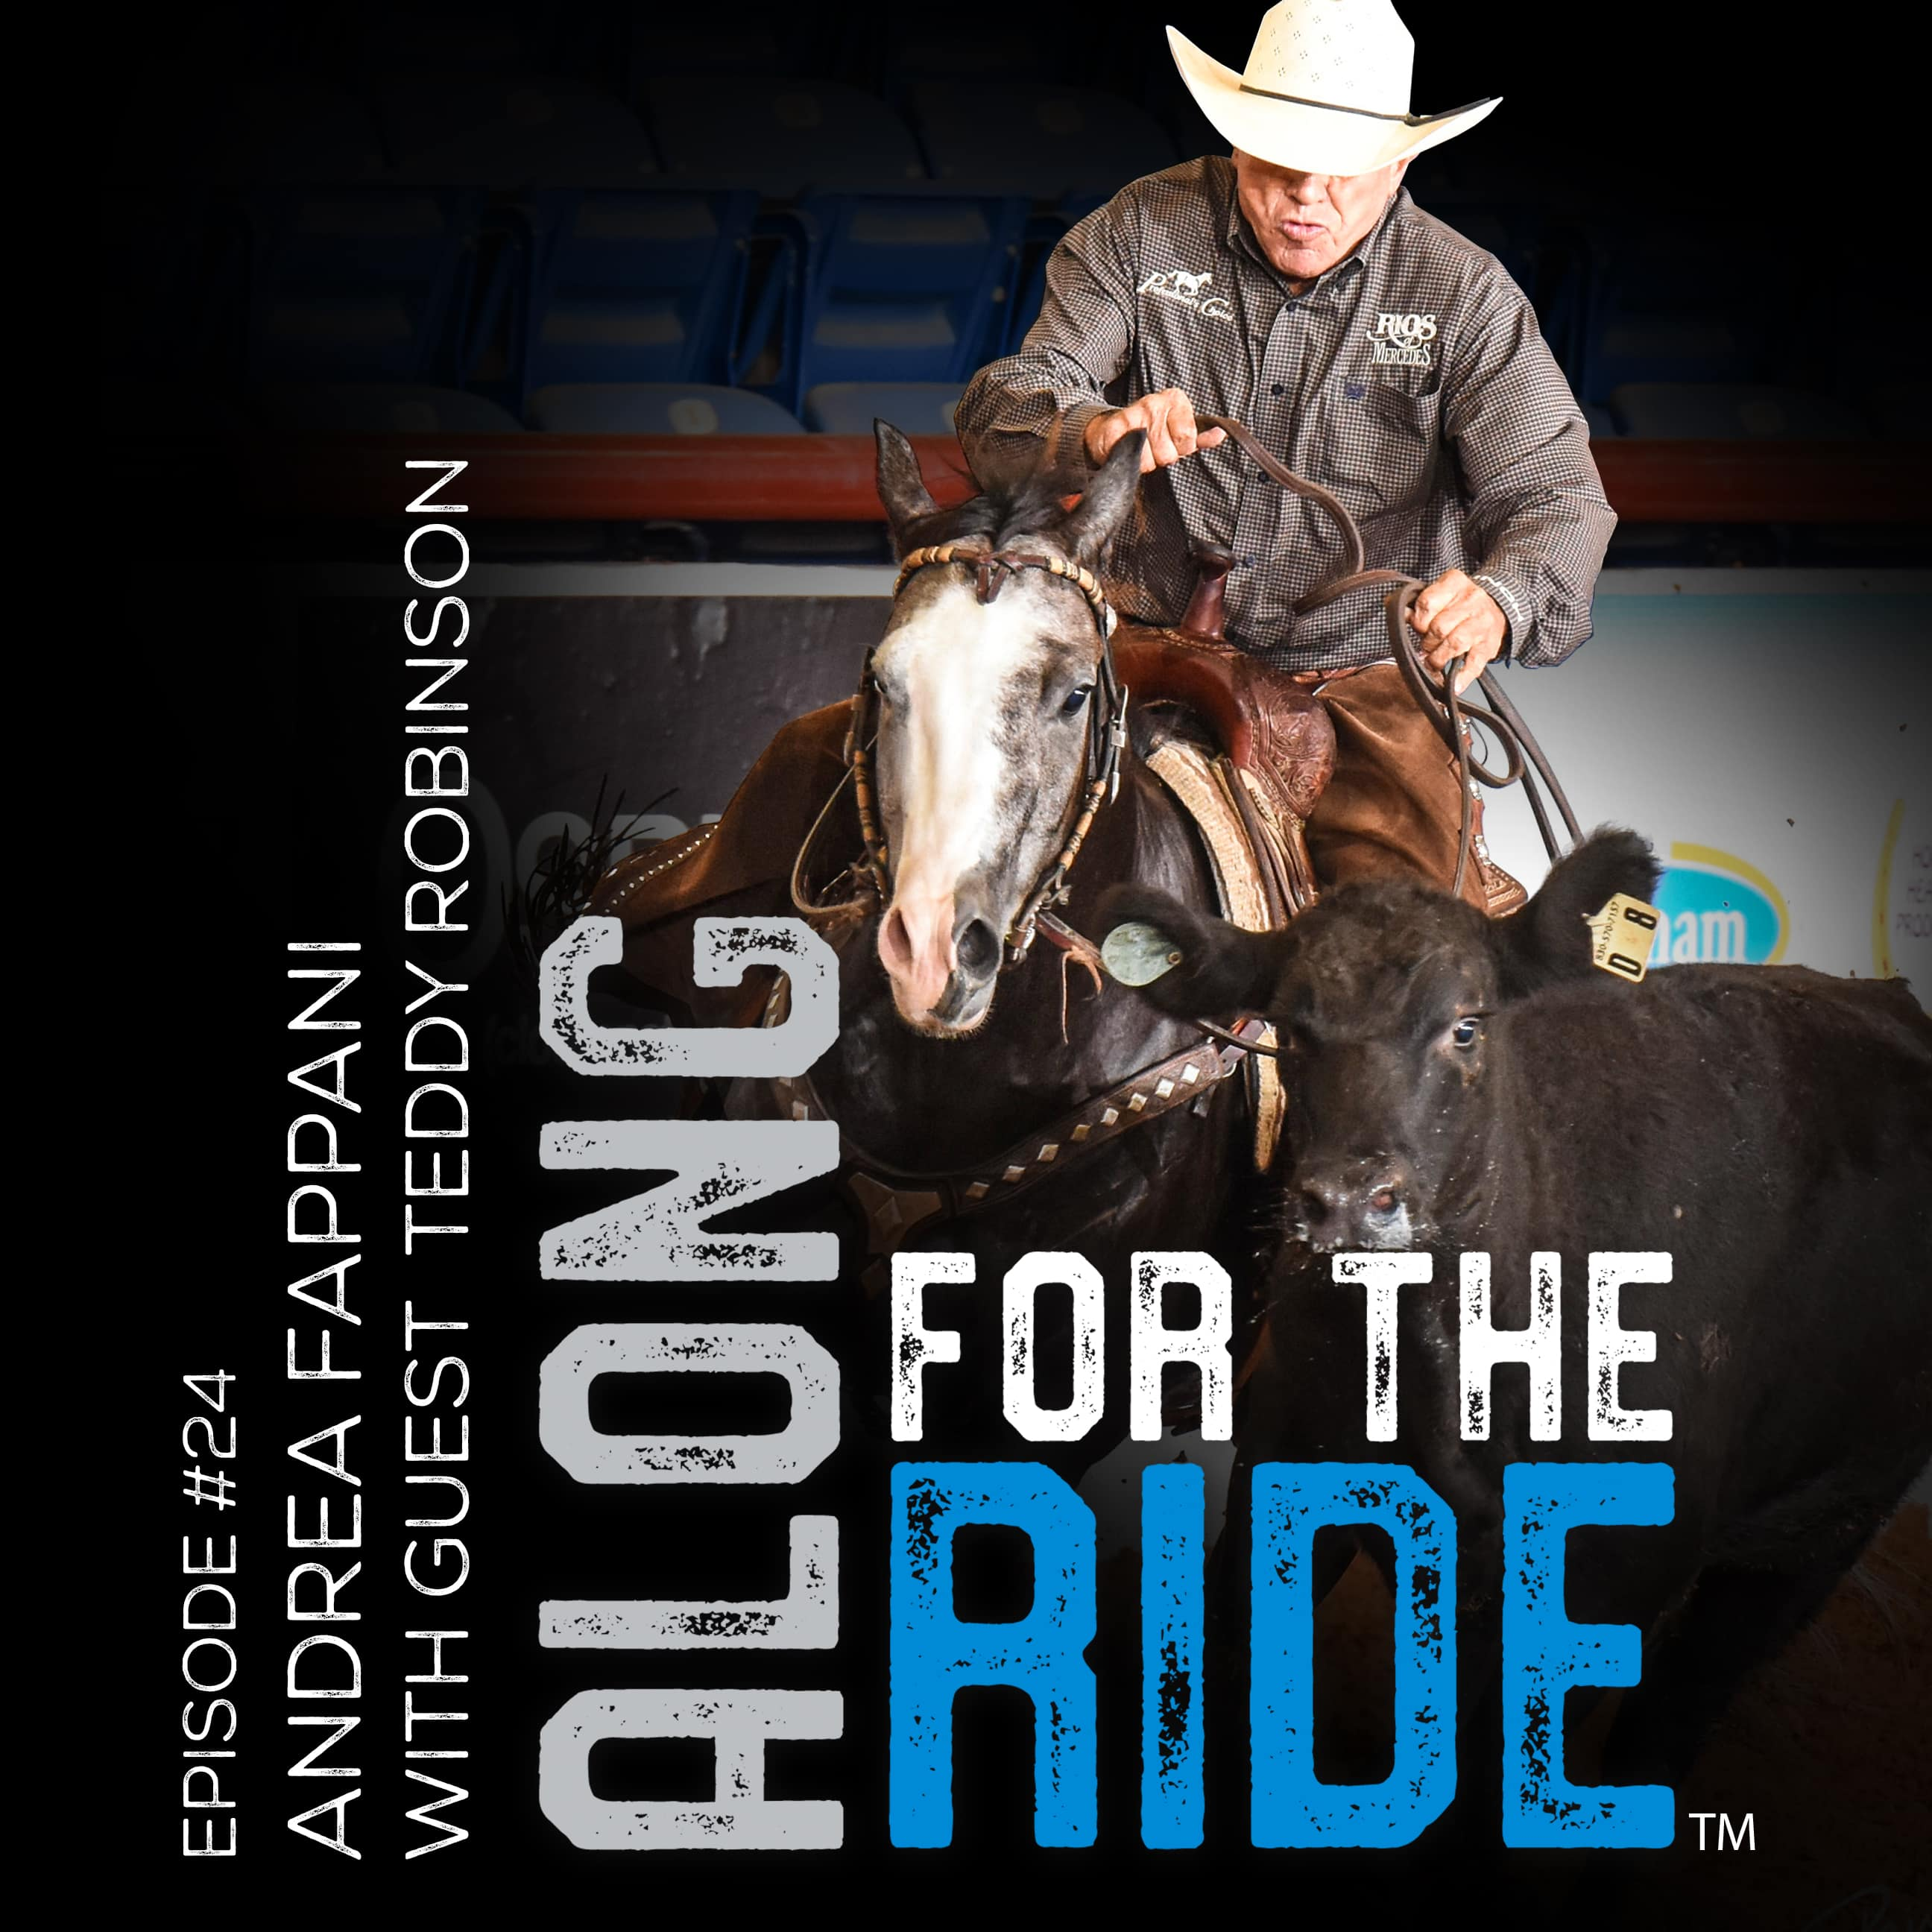 Teddy Robinson 7 Time NRCHA Open Snaffle Bit Futurity Champion -Along For The Ride